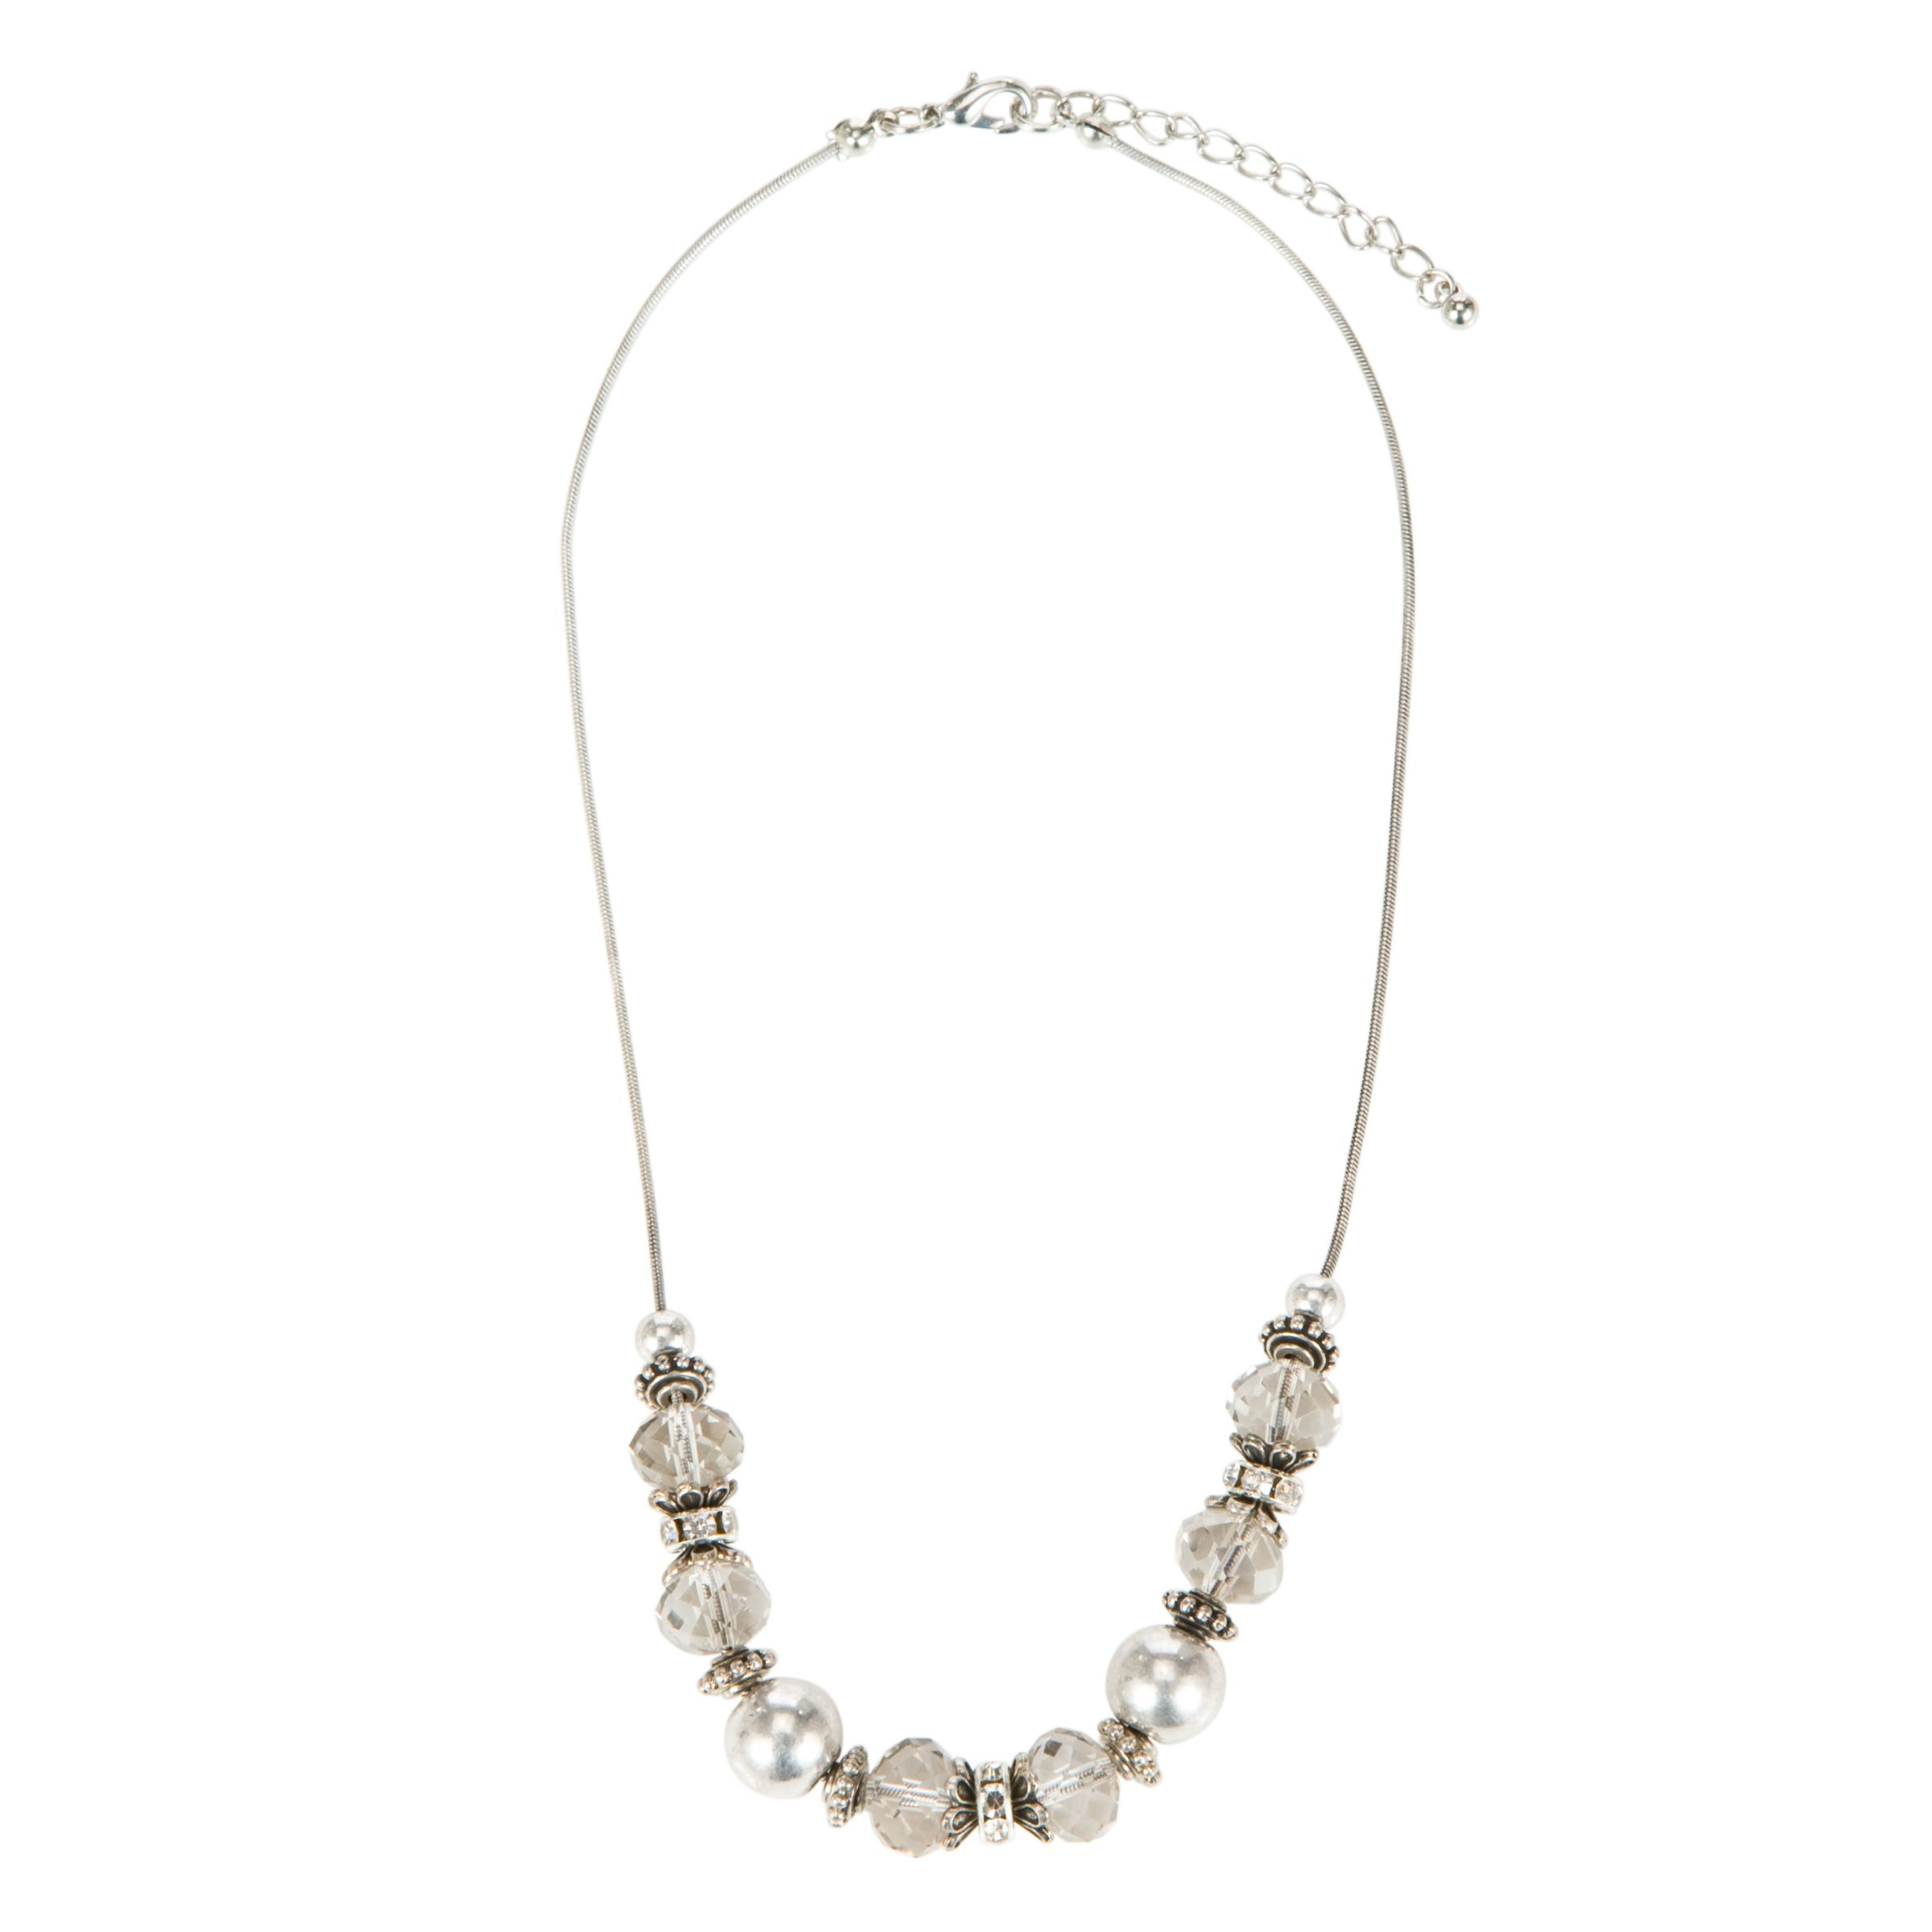 John Lewis Women Faceted Bead Rondell Necklace, Smokey